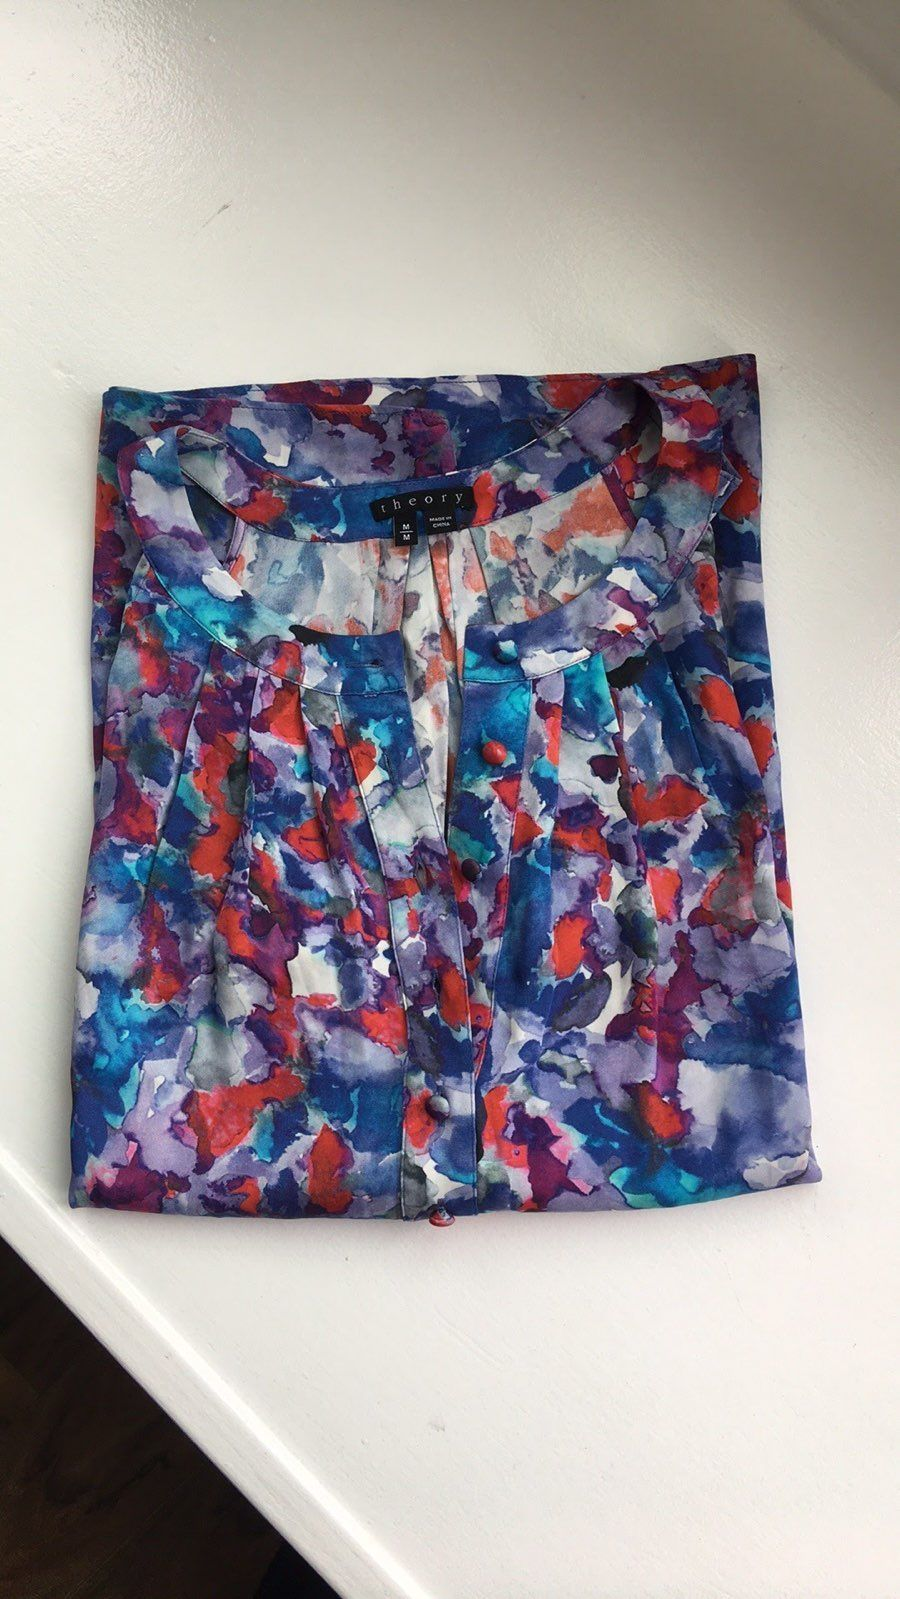 NWOT Theory Colorful Top Size Medium